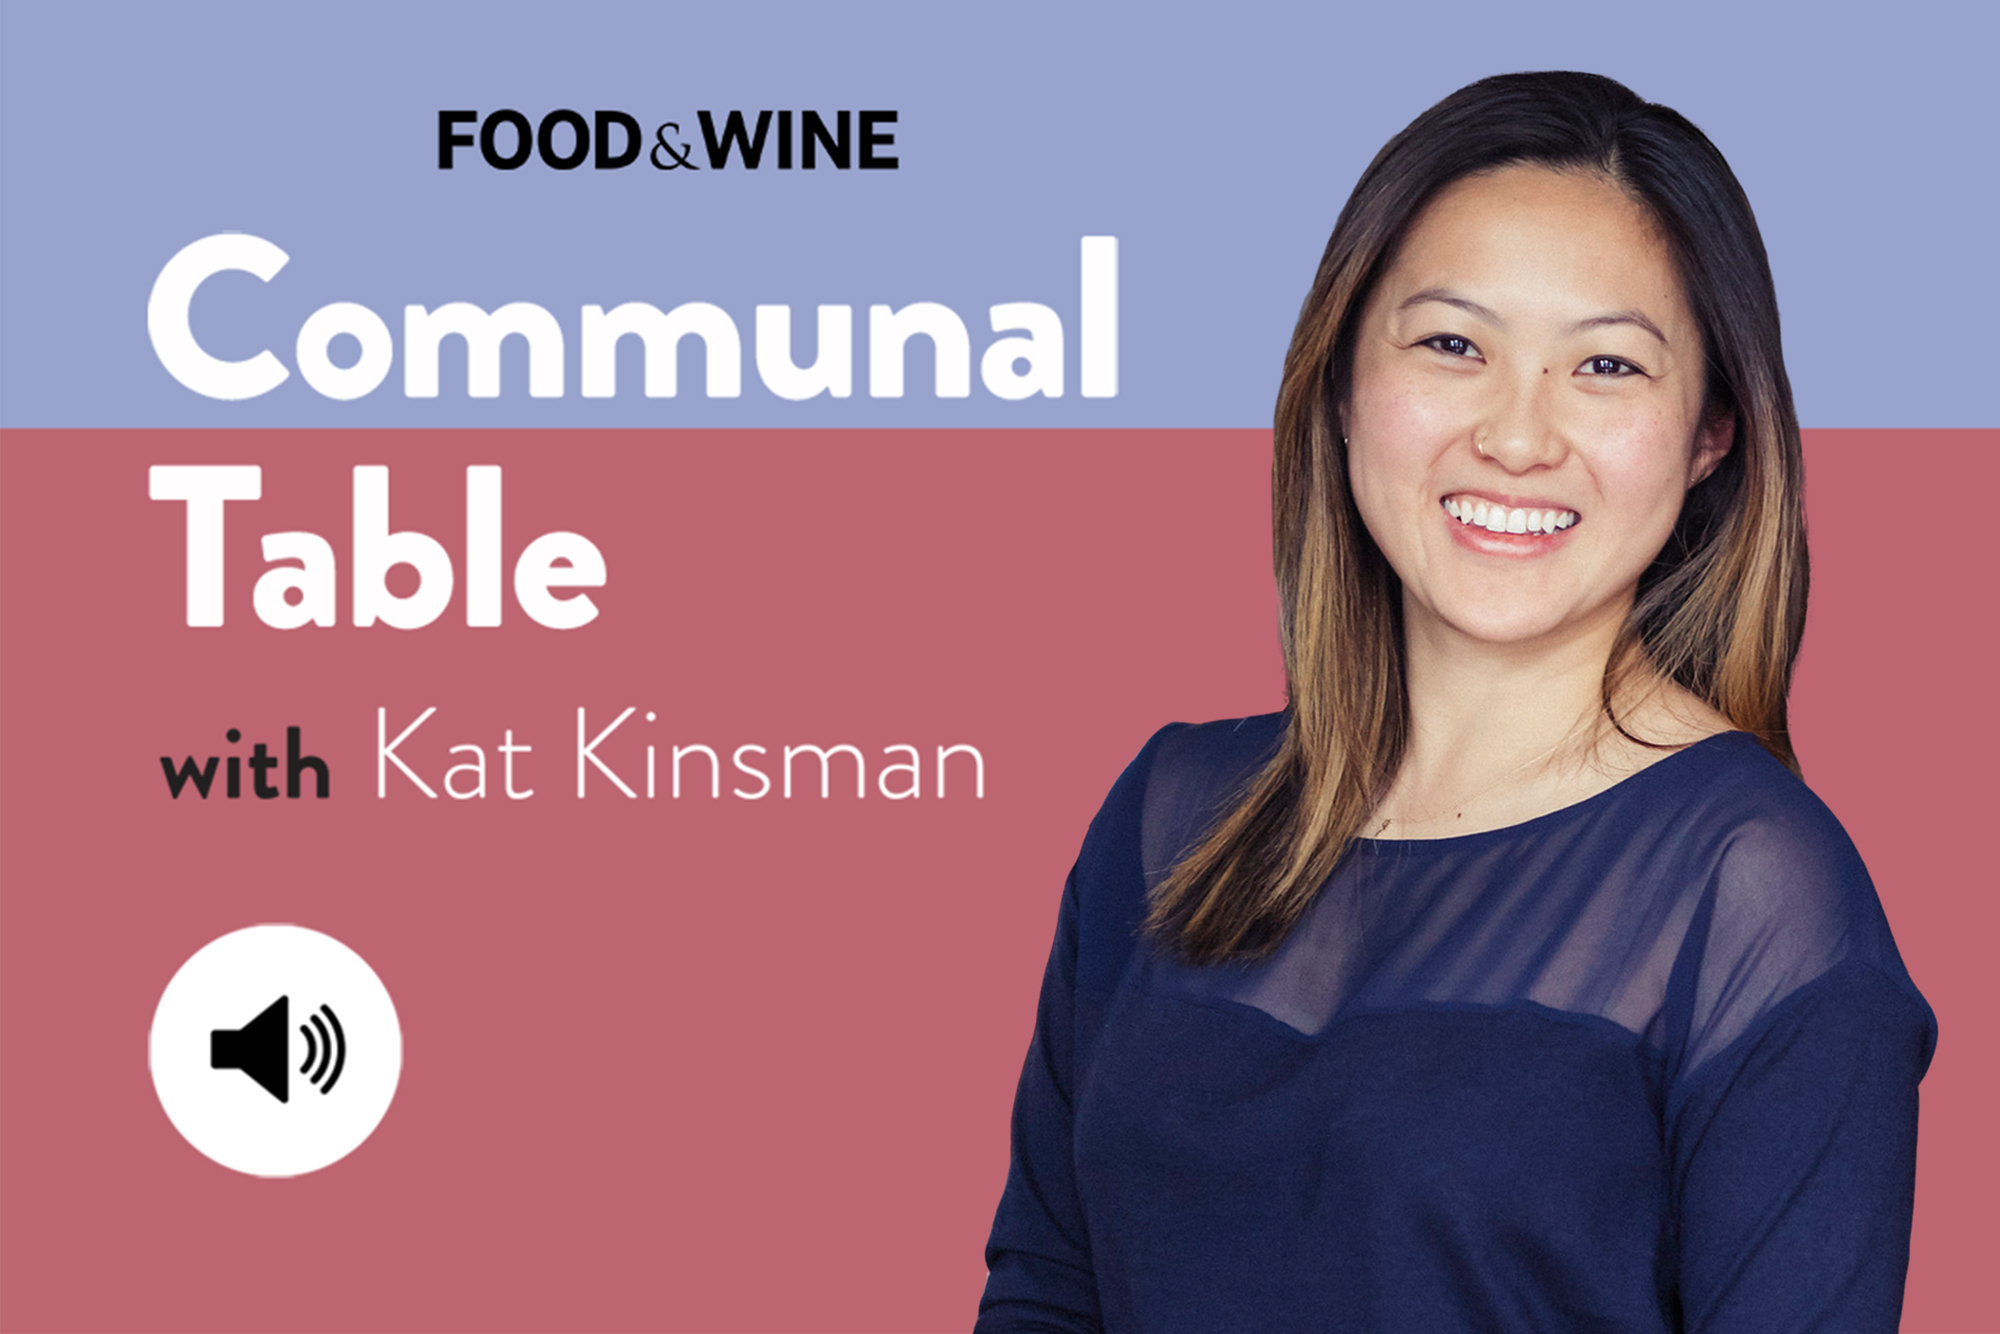 Communal Table wit Kat Kinsman featuring Jenny Dorsey